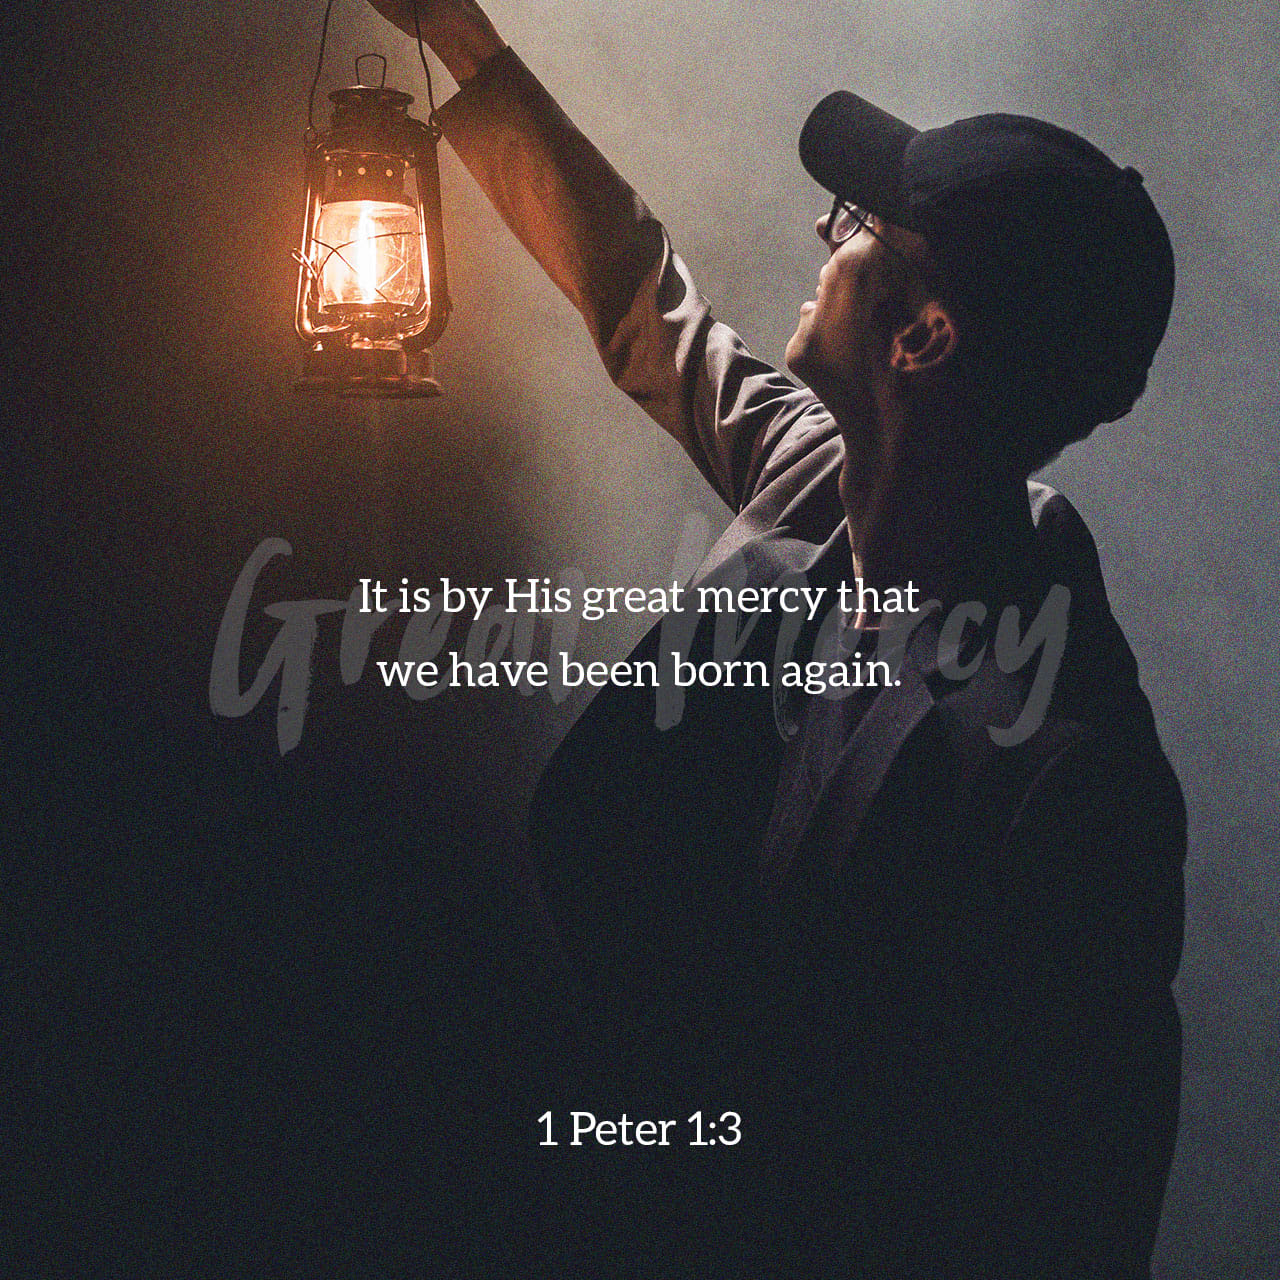 1 Peter 1:3 Blessed be the God and Father of our Lord Jesus Christ! According to his great mercy, he has caused us to be born again to a living hope through the resurrection of Jesus Christ from the dead | English Standard Version (ESV) | Descargar la Biblia App ahora